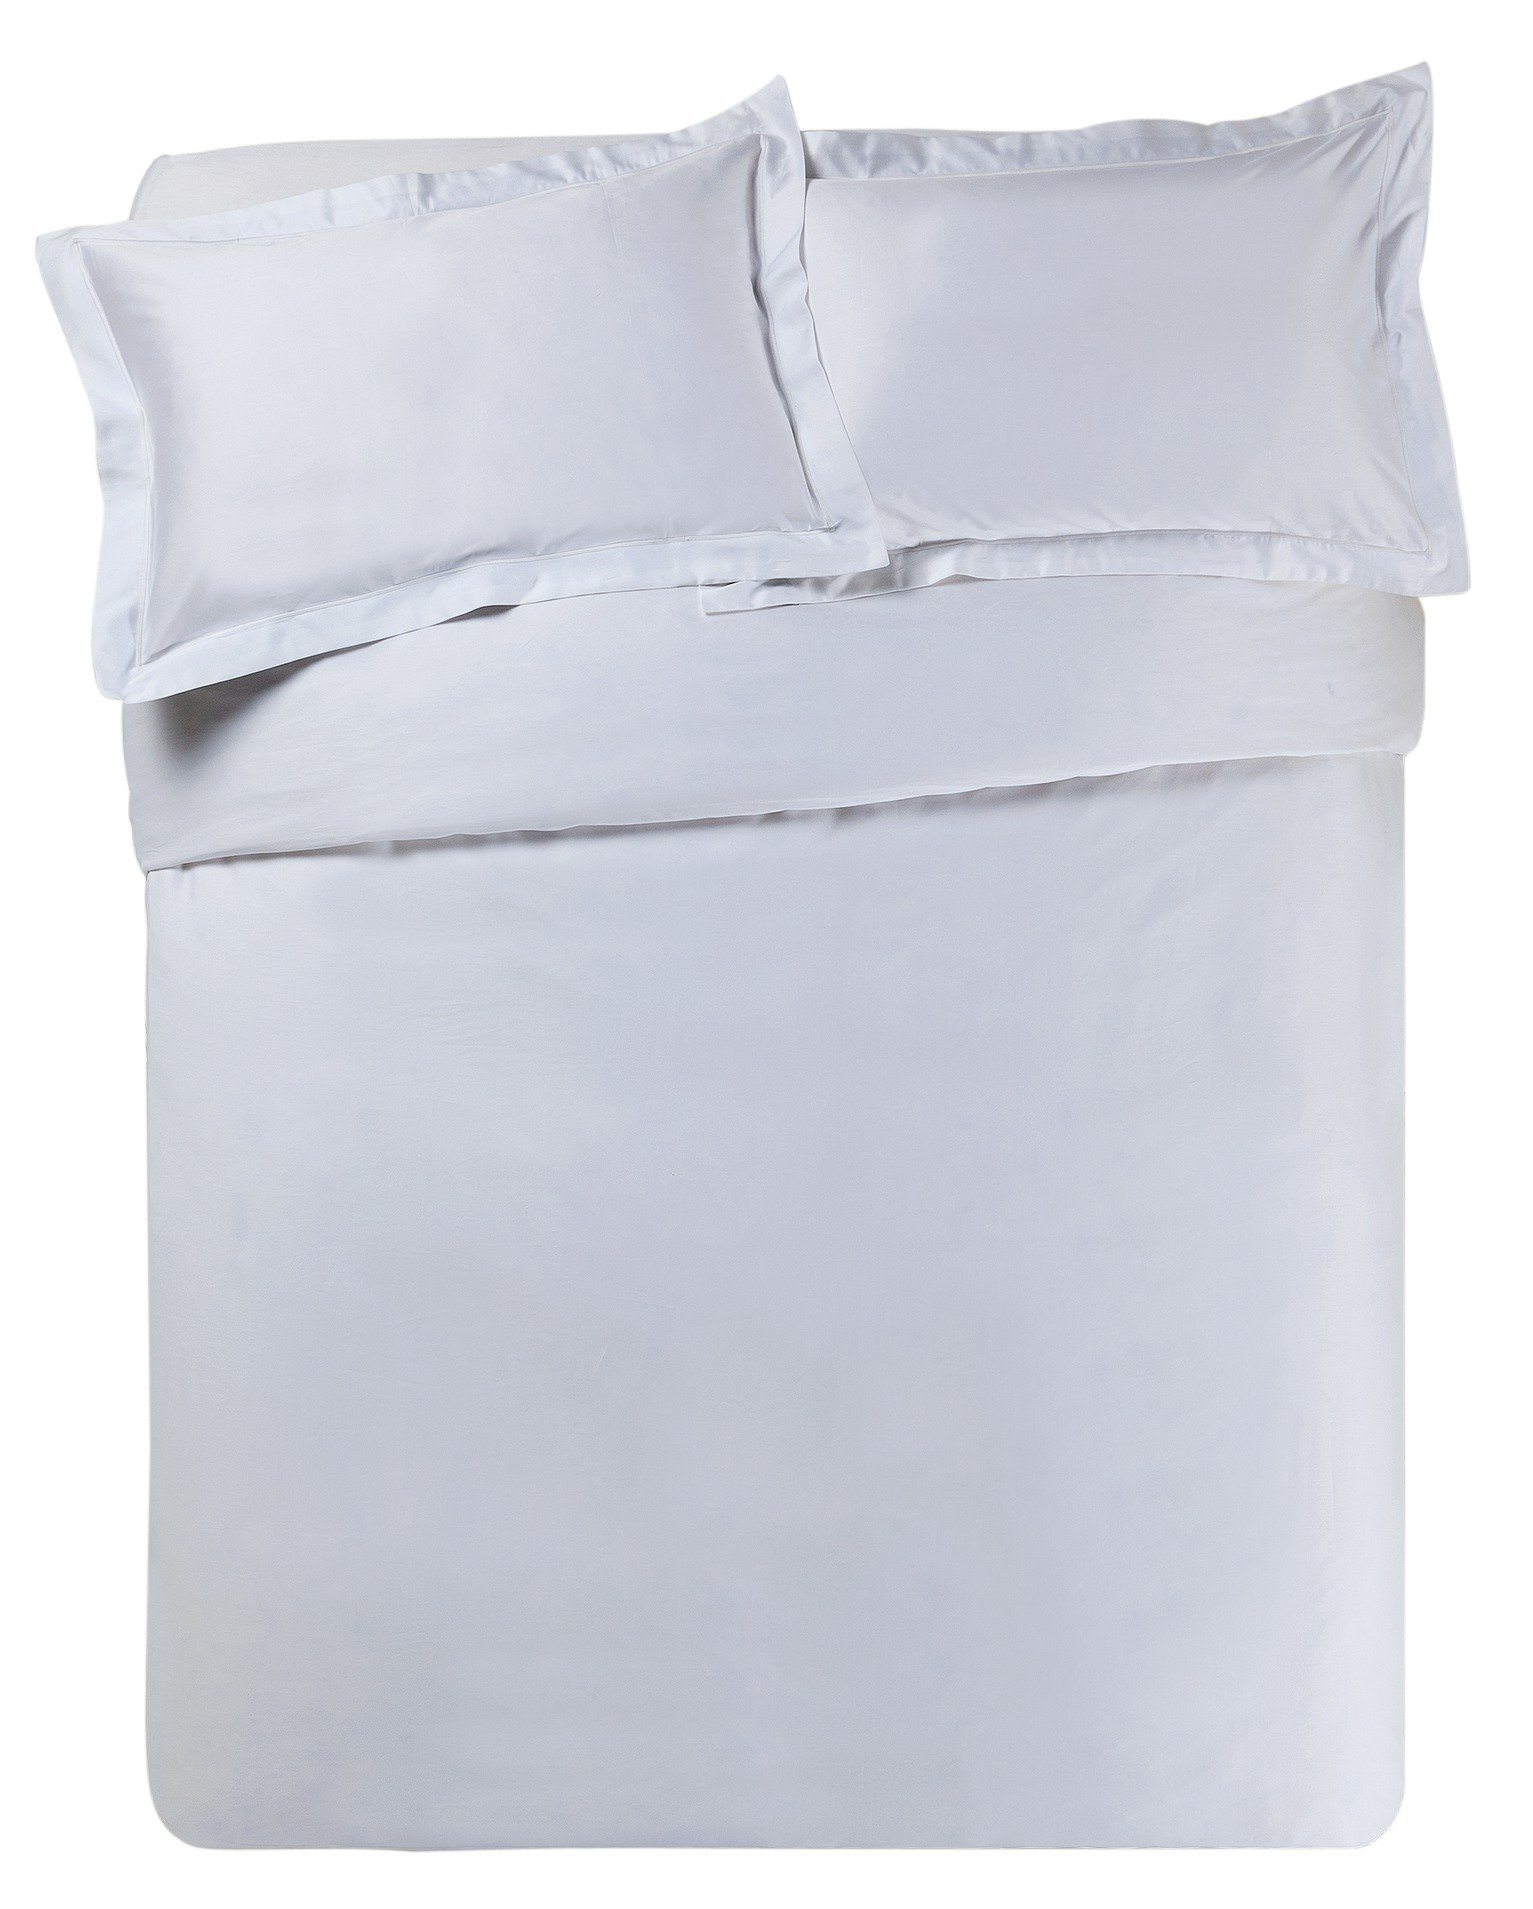 heart-of-house-white-400-tc-bedding-set-superking